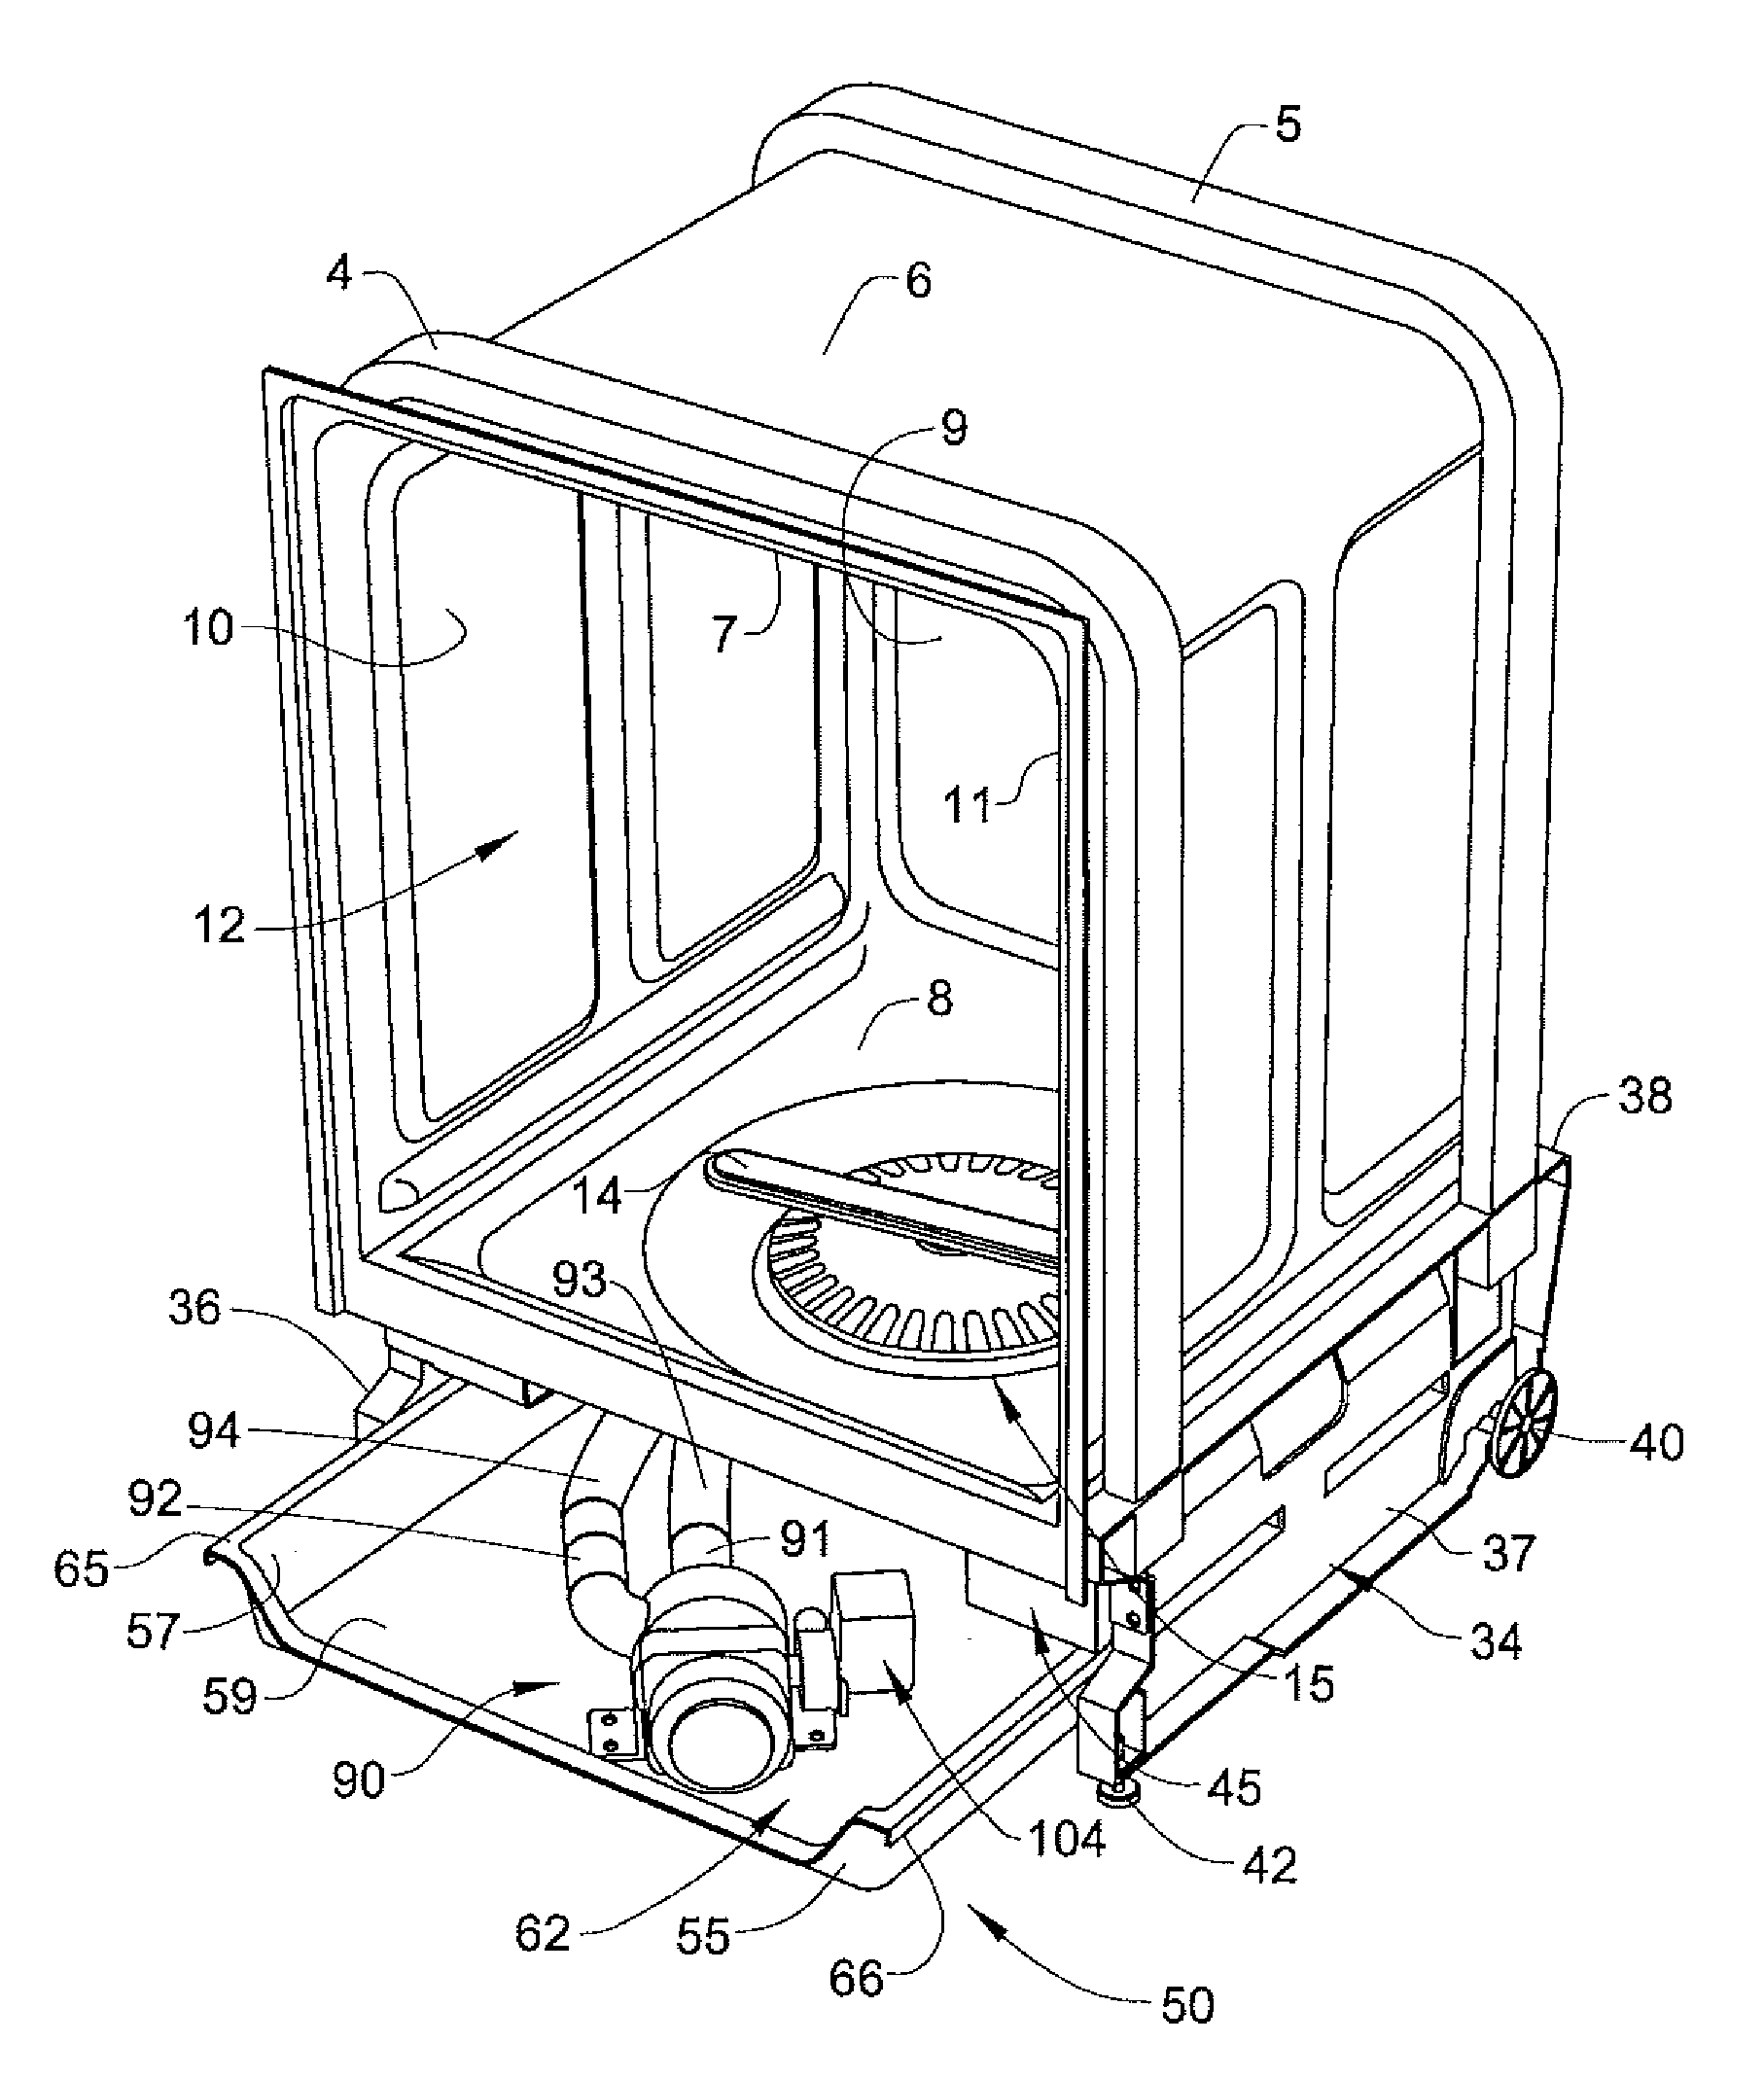 Patent Us20080289664 Modular Drip Pan And Component